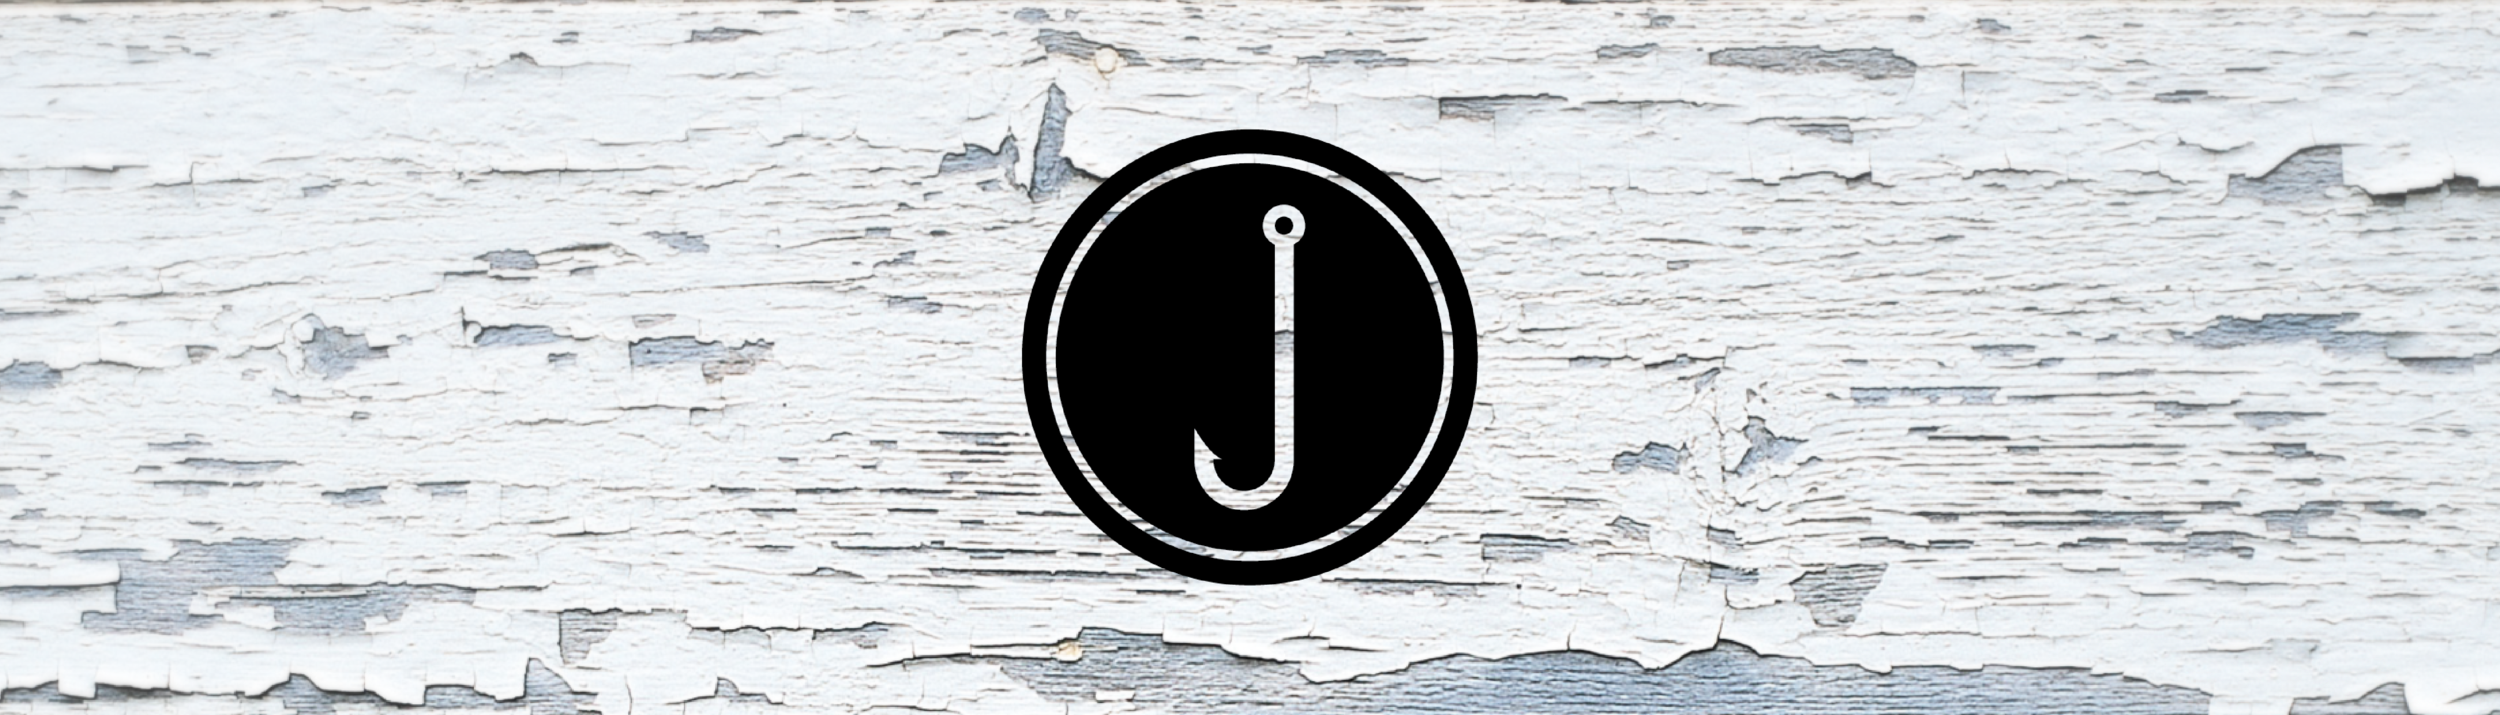 JAKES Behance -10.png